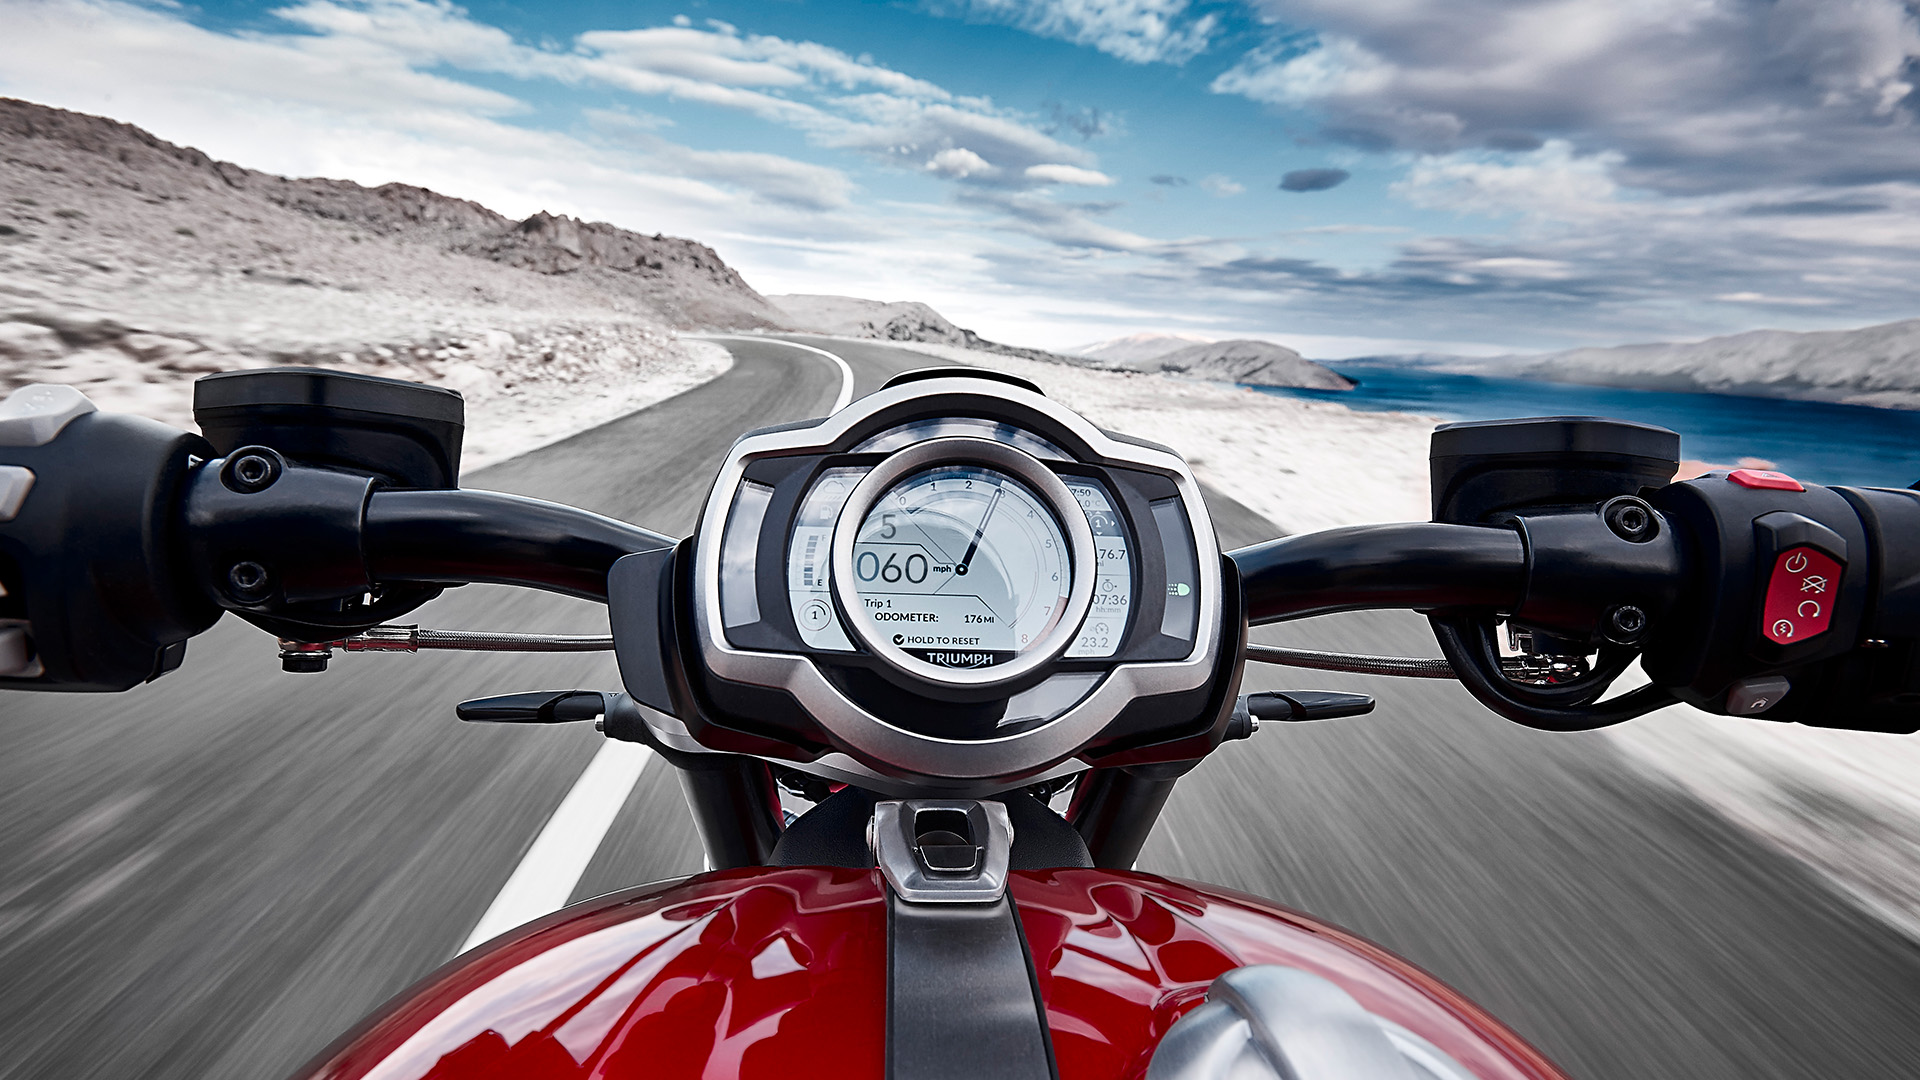 Handling view of the Triumph Rocket 3 R built with a focus of the second generation TFT instruments